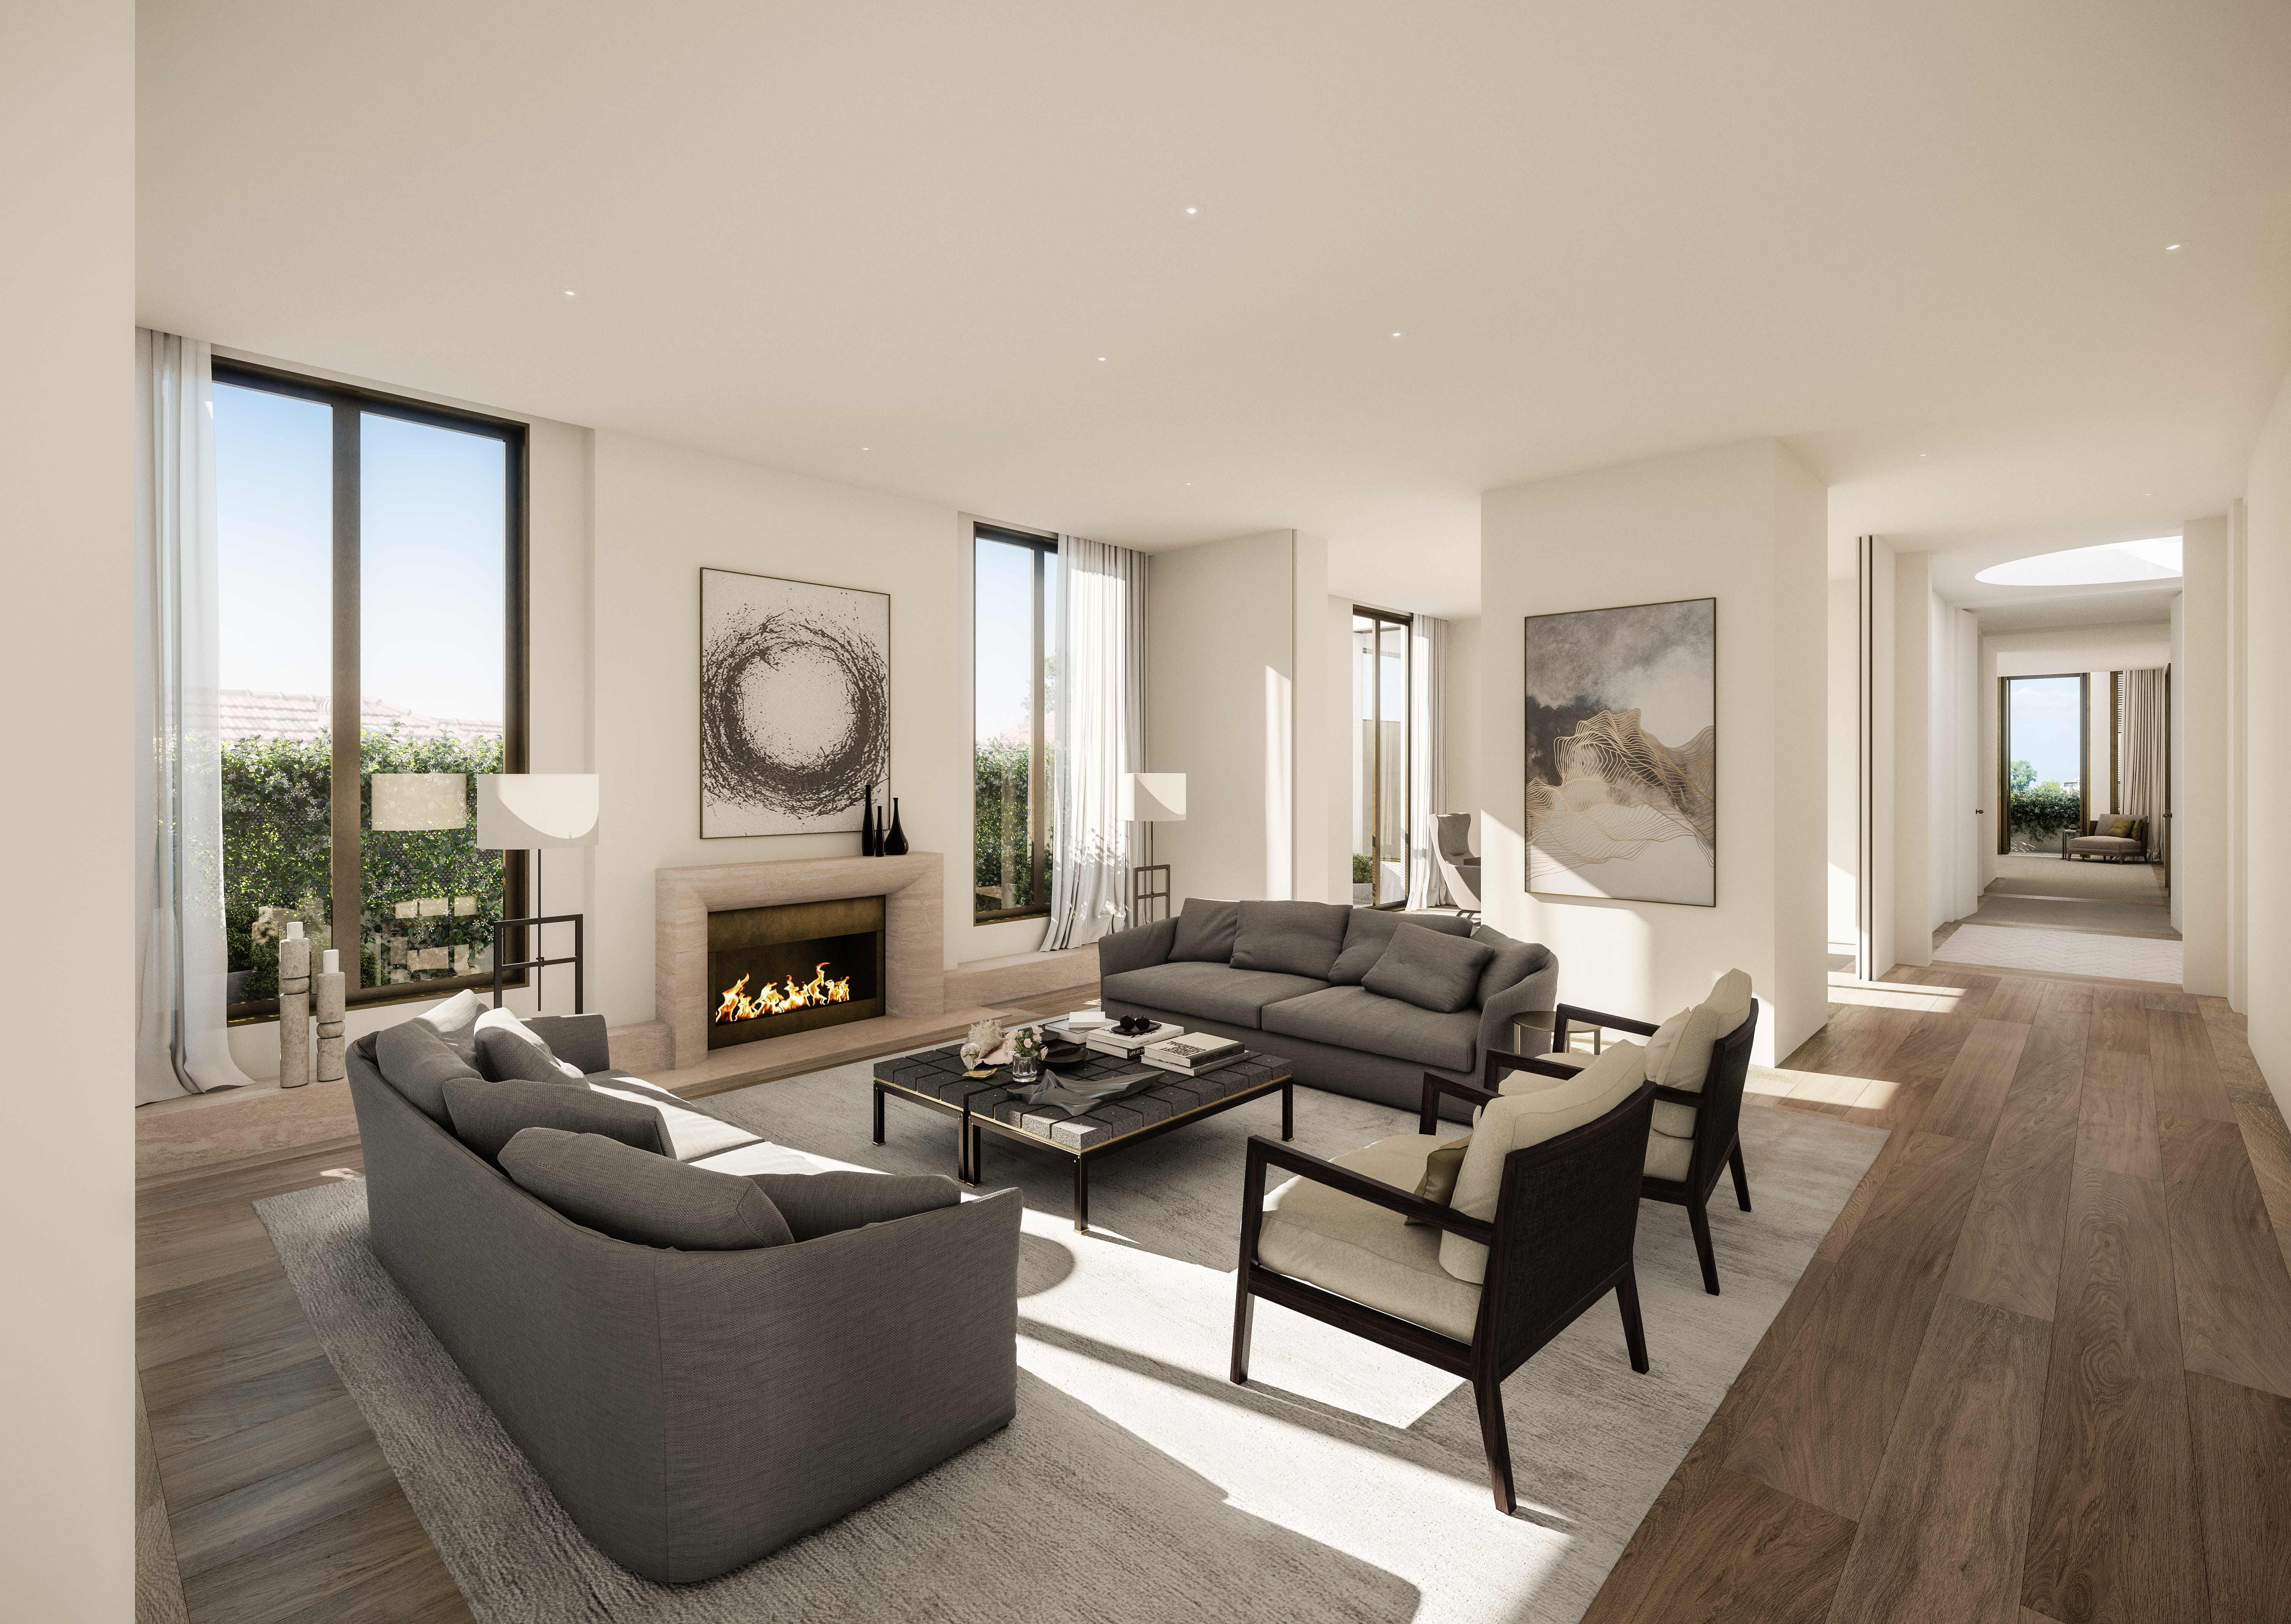 The Design  The Wallace  Architectural visualisations  Pinterest